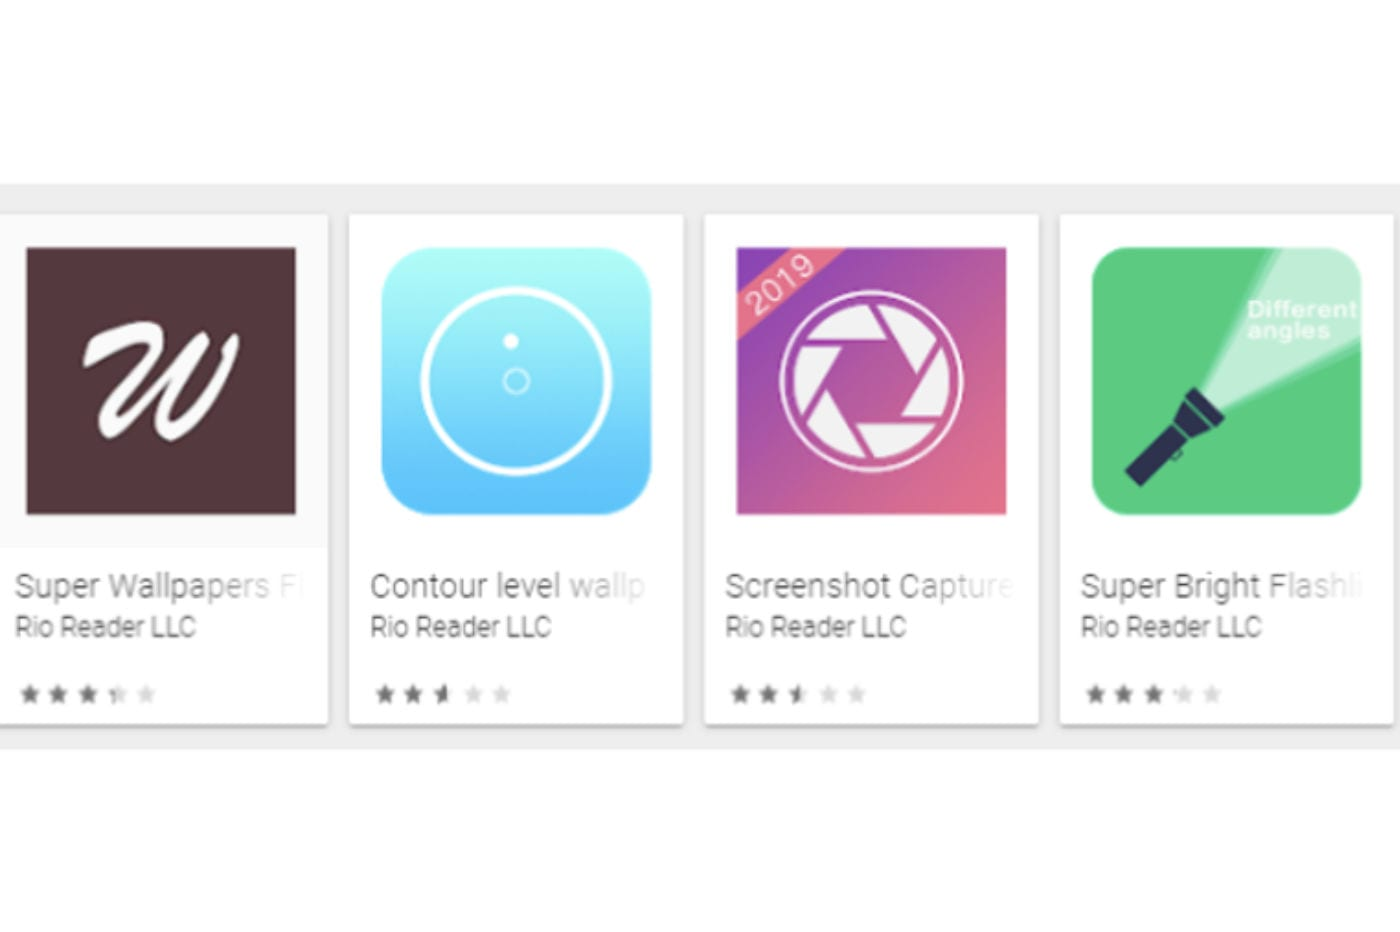 GOOGLE SUPPRIME 25 APPLICATIONS DU PLAY STORE EN RAISON DE VOLS D'IDENTIFIANTS FACEBOOK